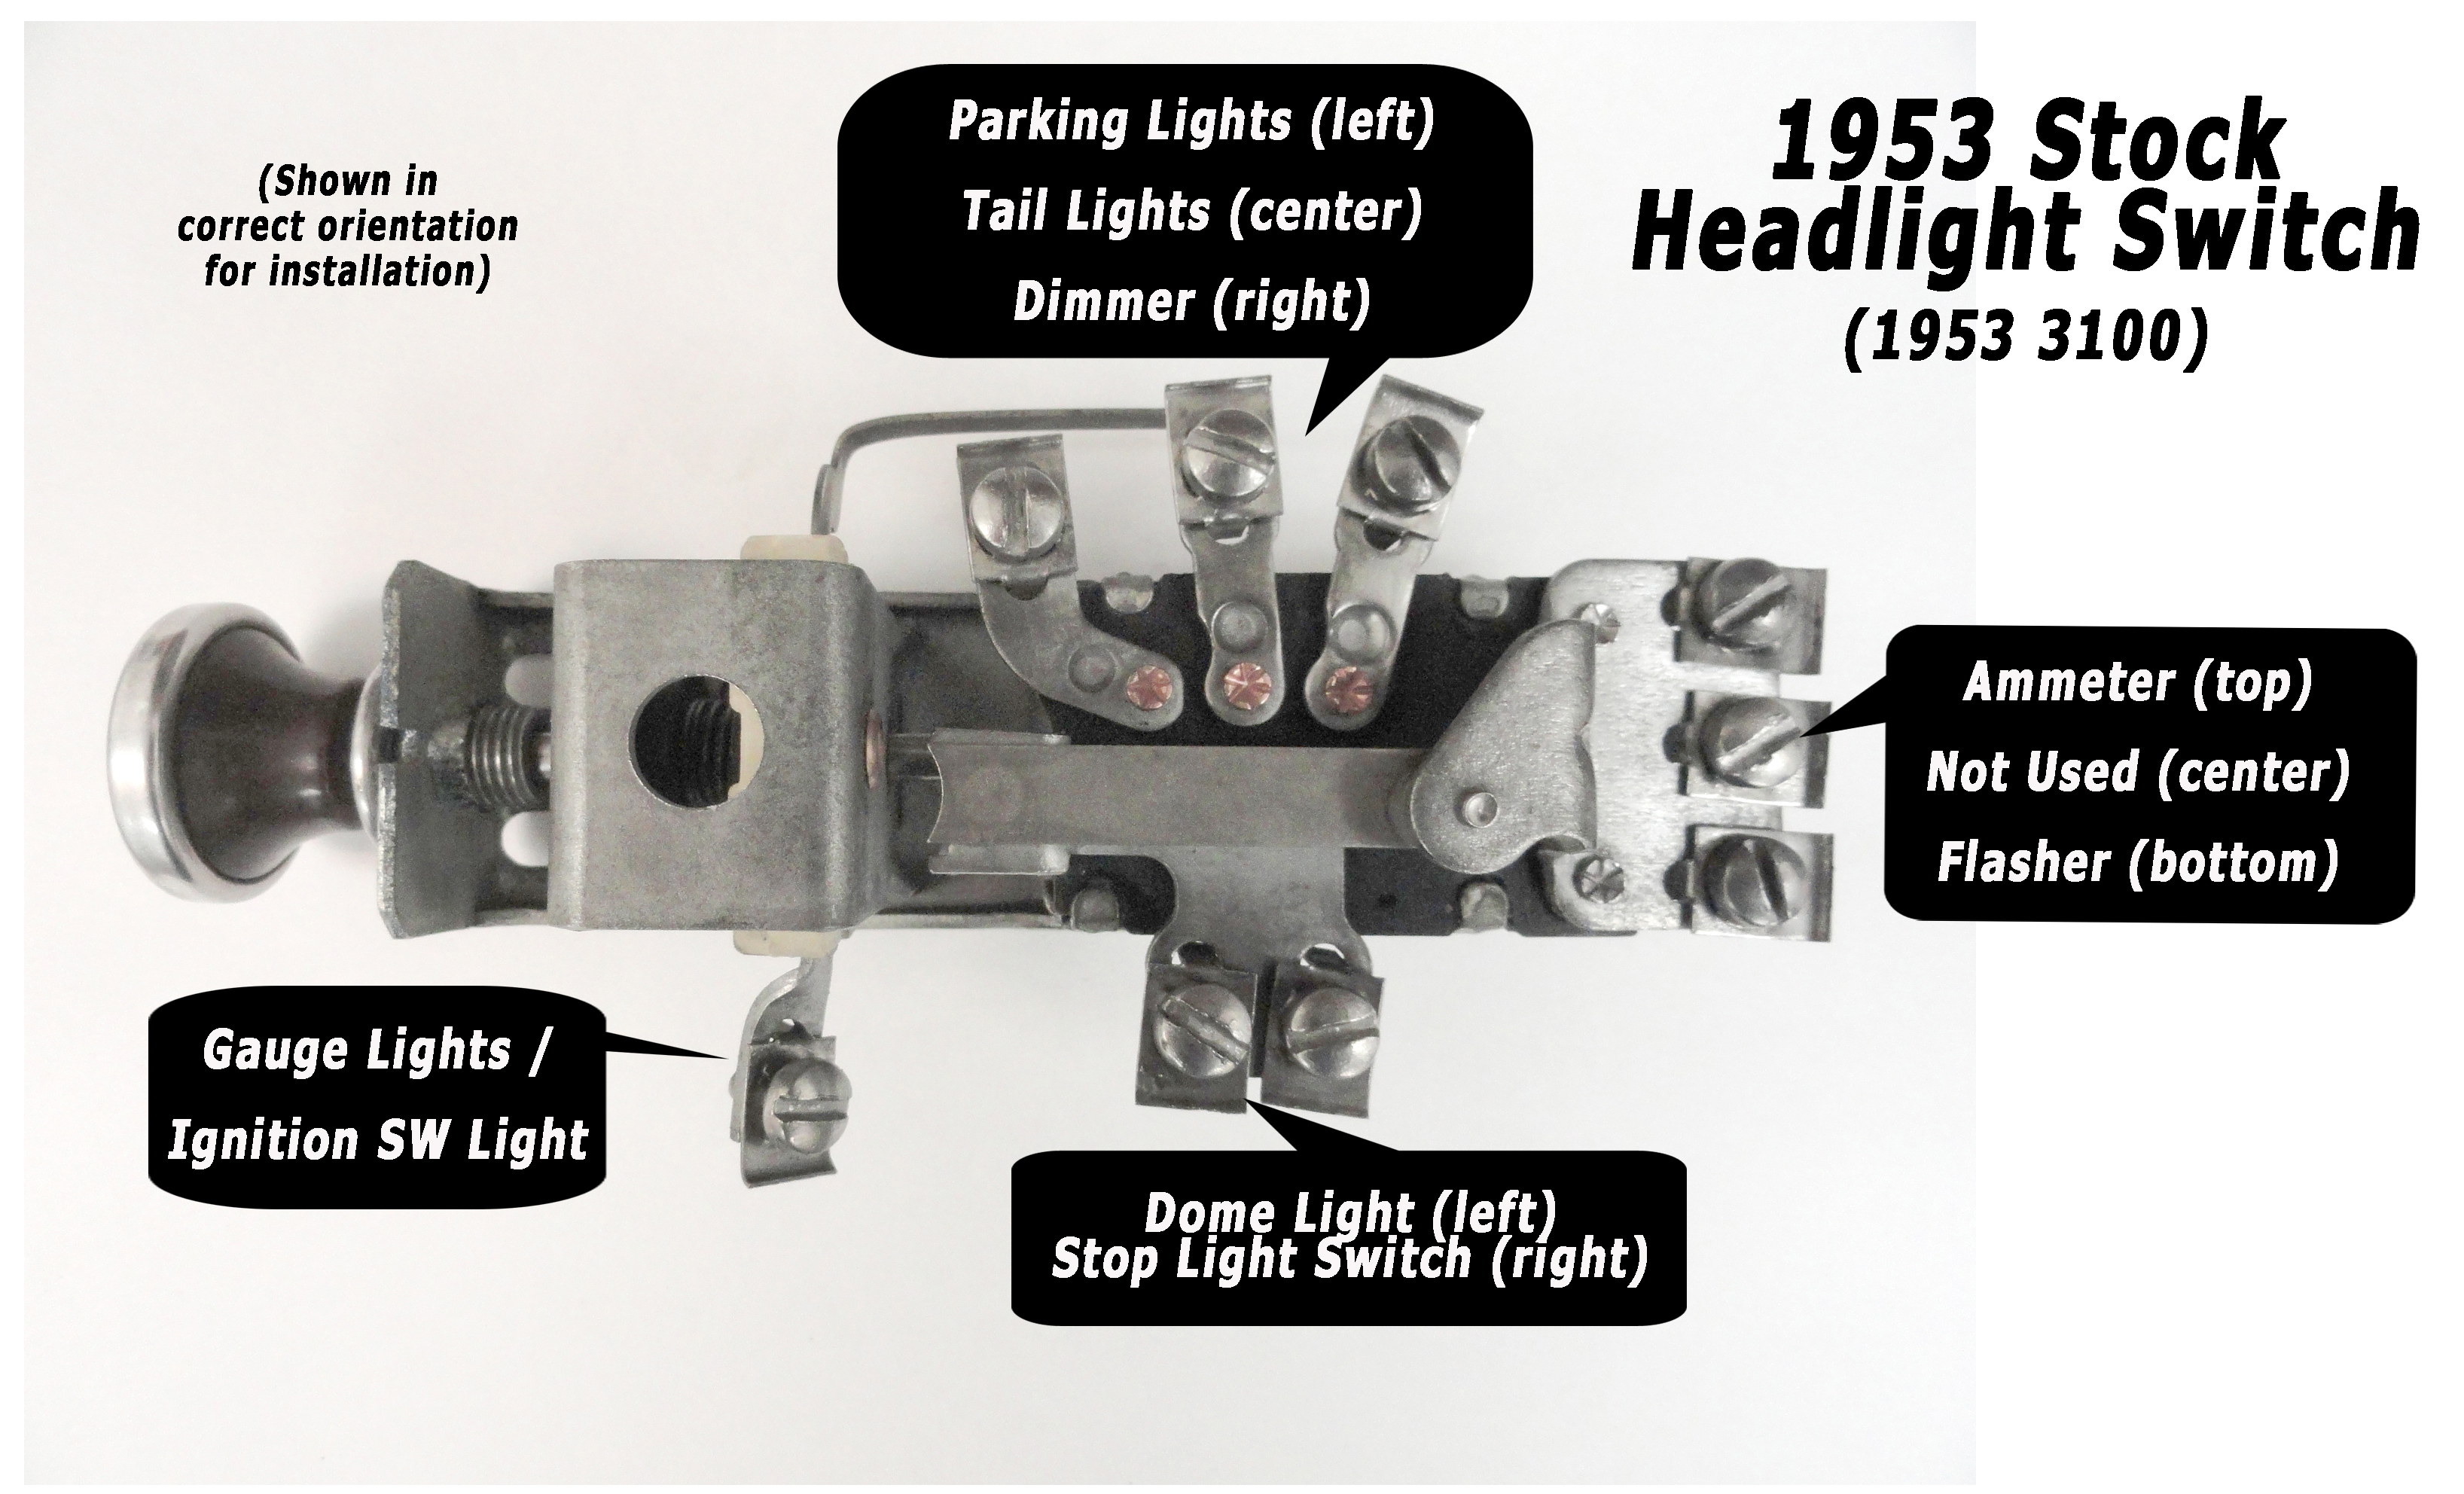 Headlight Switch Wiring Diagram Free For You Volvo Ignition Classic Parts Talk Rh Classicparts Com 01 Chevy S10 Atv